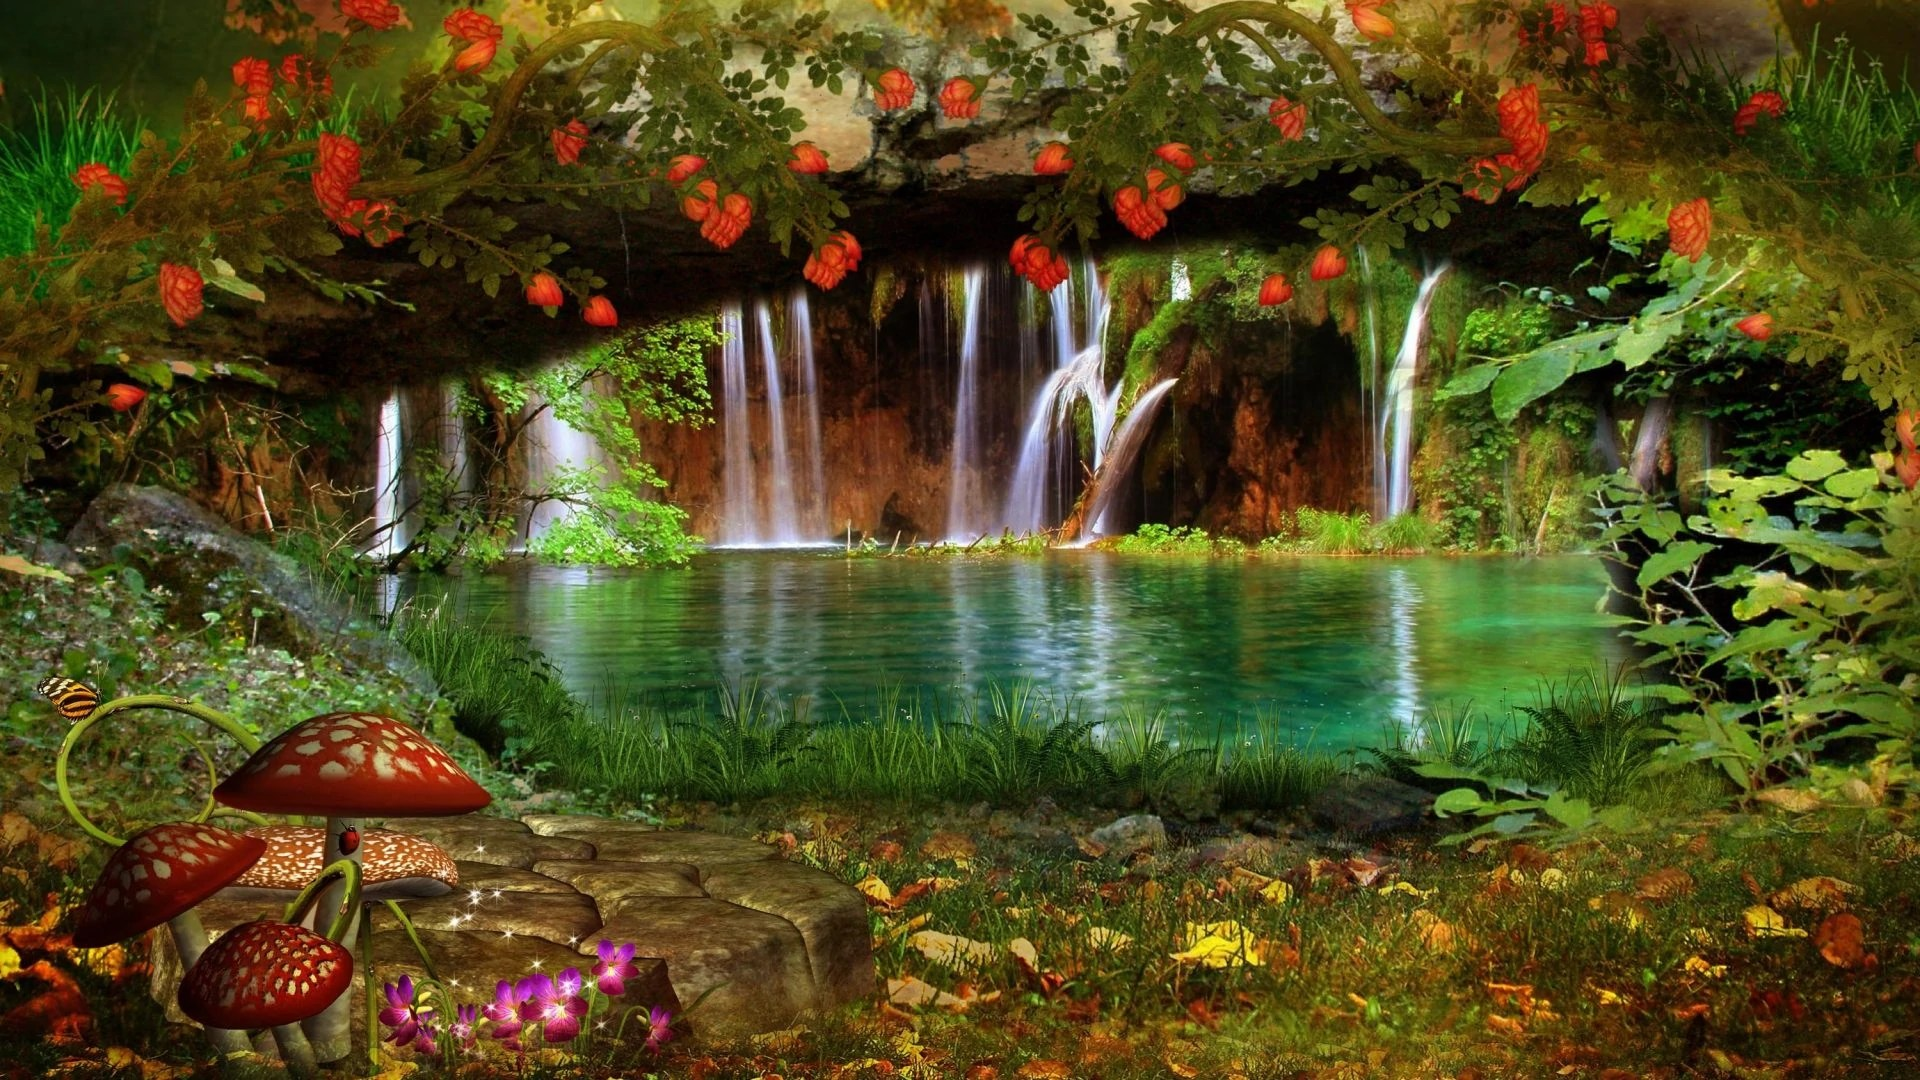 Full Screen Desktop Fall Leaves Wallpaper Image Forests Cool Colors Flowers Lakes Plants Beautiful